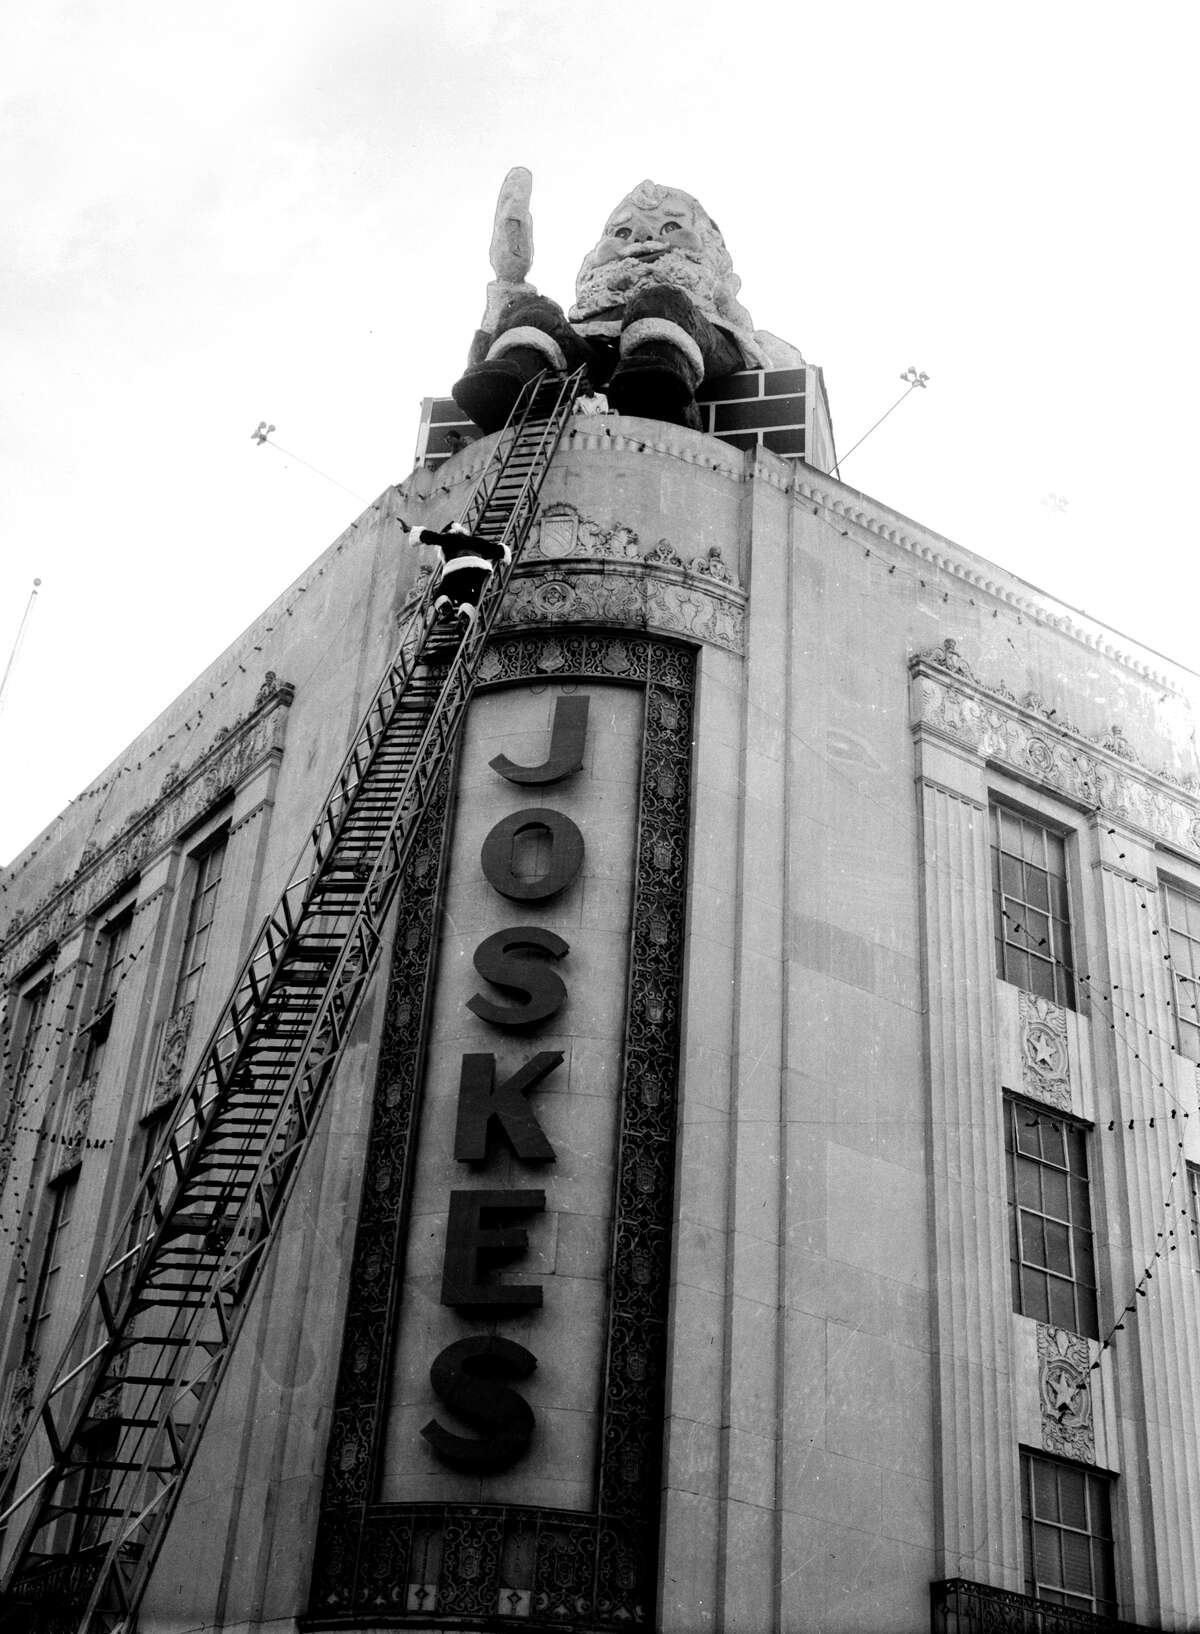 """""""When I was a child (a long time ago), my parents would drive me and all five of my siblings downtown to see the Joske's Santa on top on the building and all the windows with Christmas scenes! We all loved it!"""" - Ginny Kalisky"""